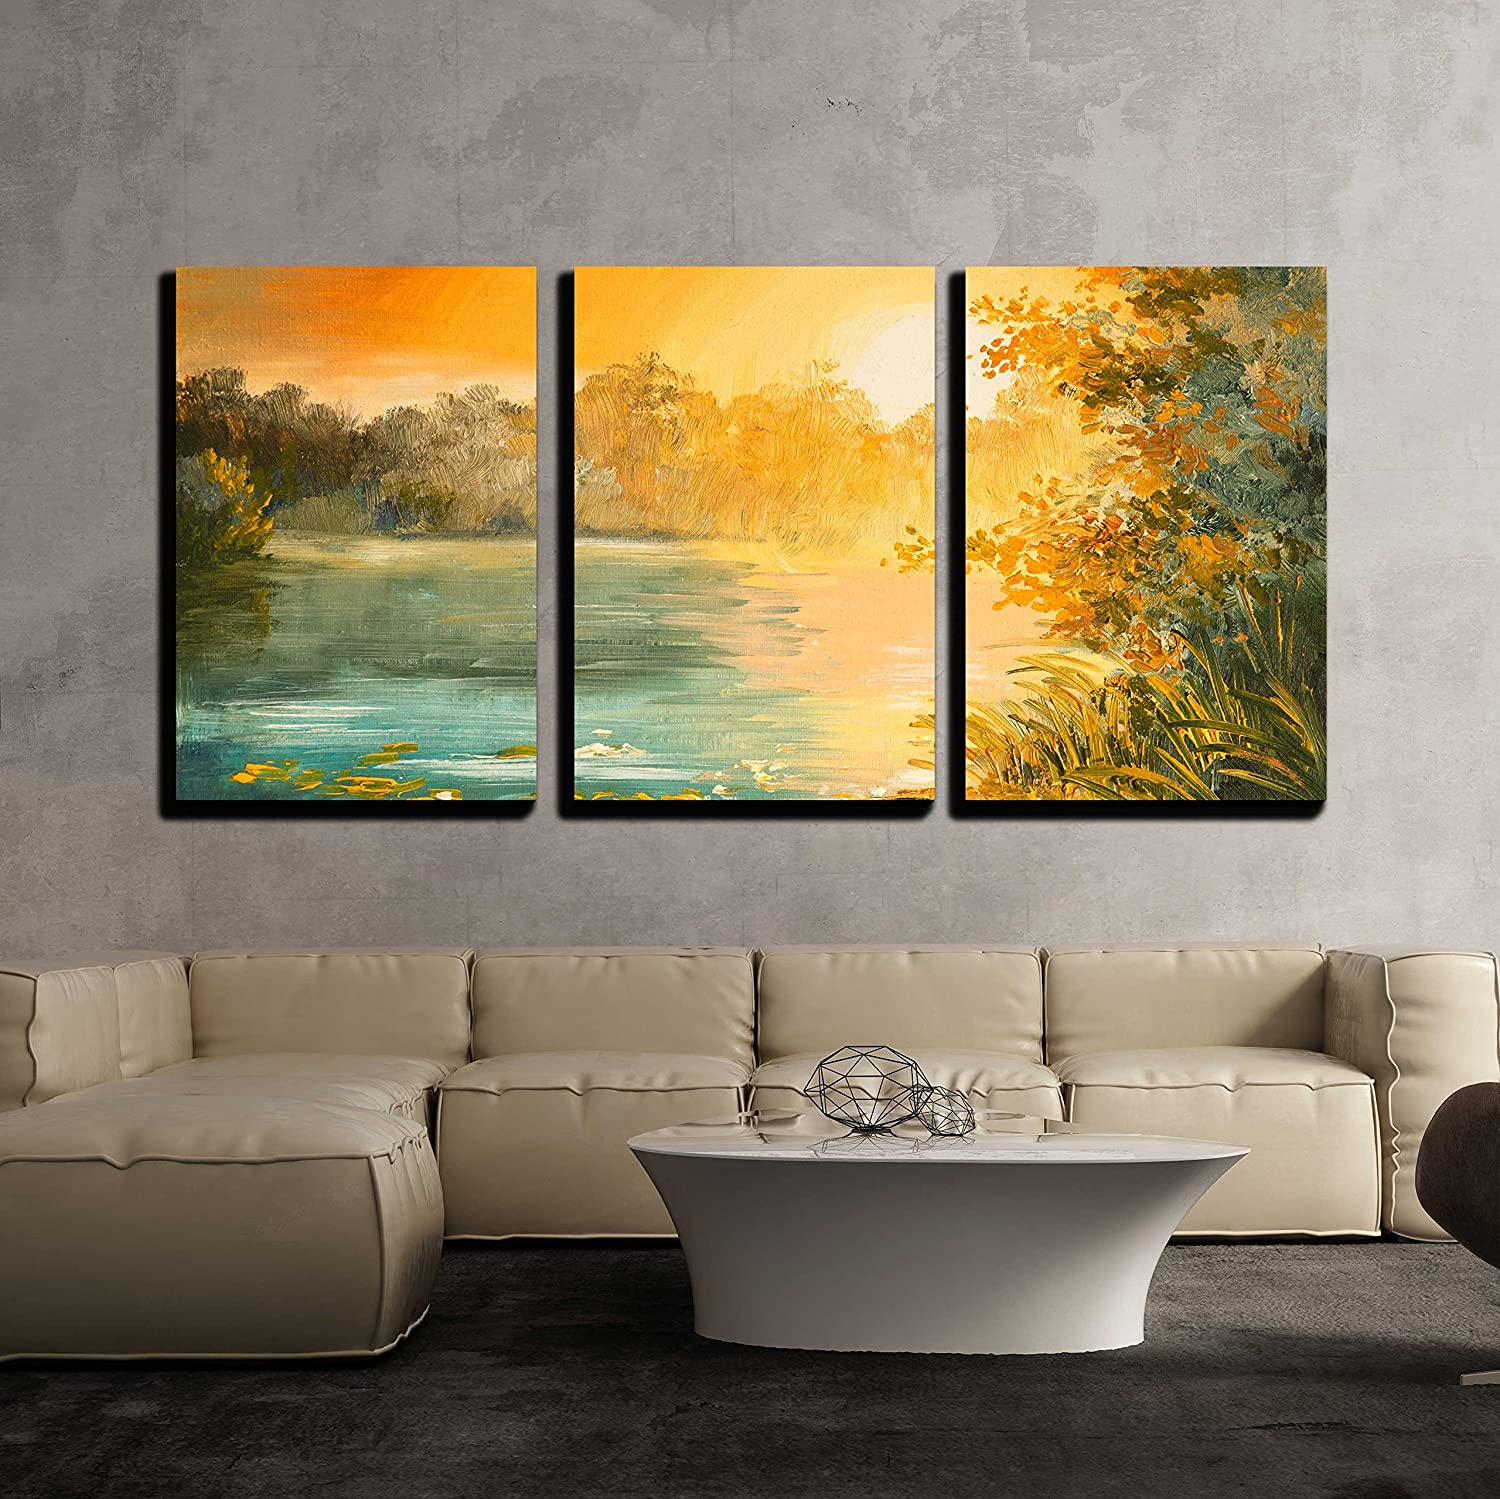 wall26 - 3 Piece Canvas Wall Art - Oil Painting - Sunset on the Lake ...